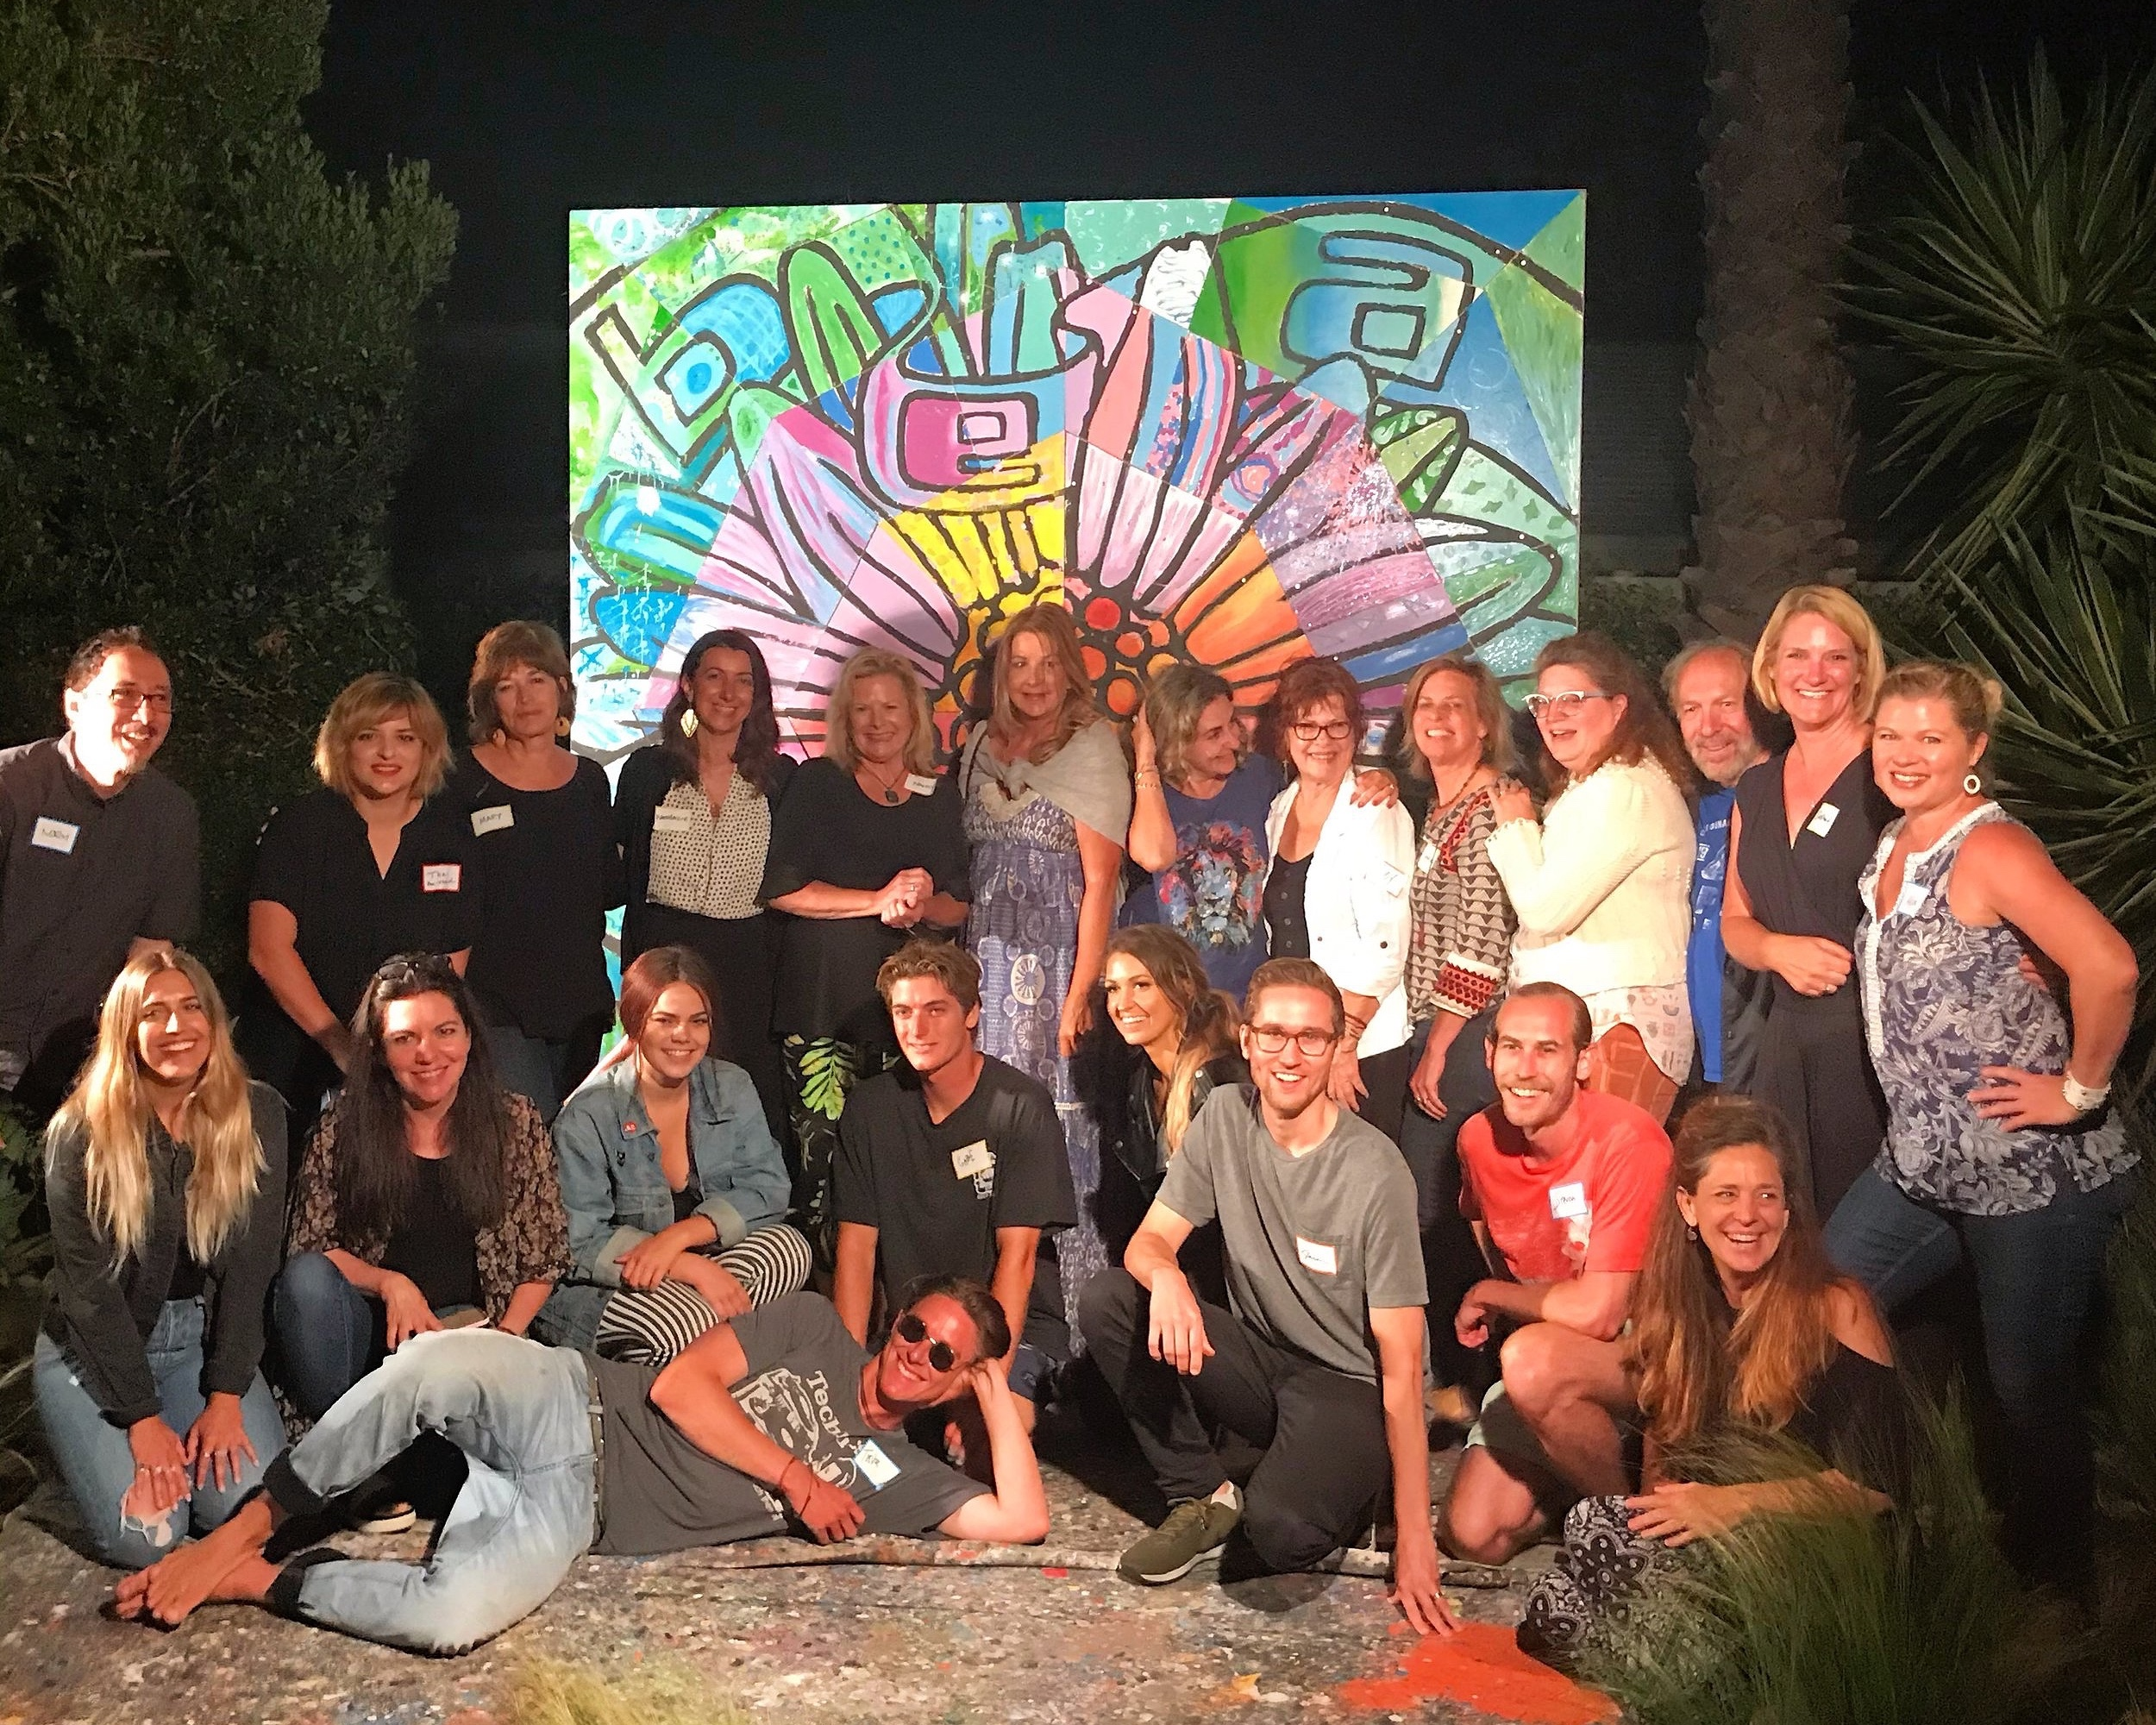 Artist Guild - Close to 50 creatives from all over Southern California came together for our Artist Guild.Our theme was